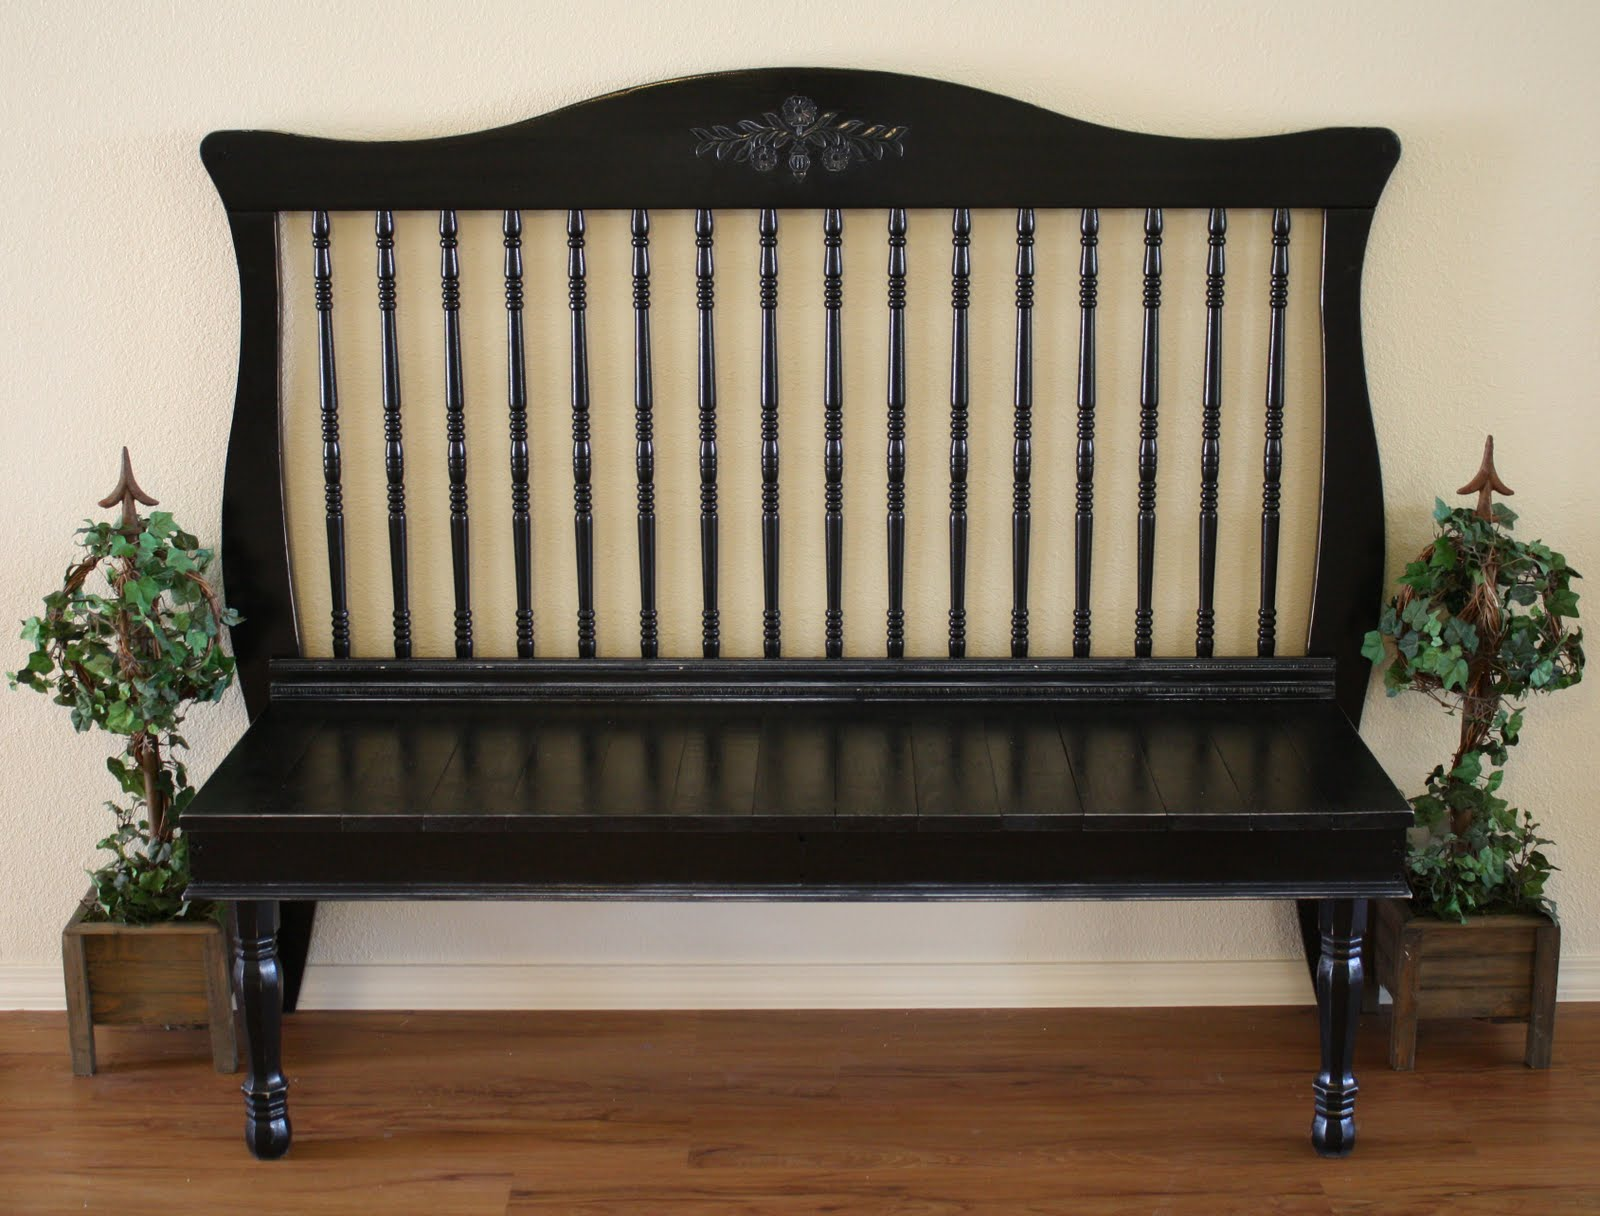 Dishfunctional designs check out my crib upcycled baby cribs for Furniture upcycling